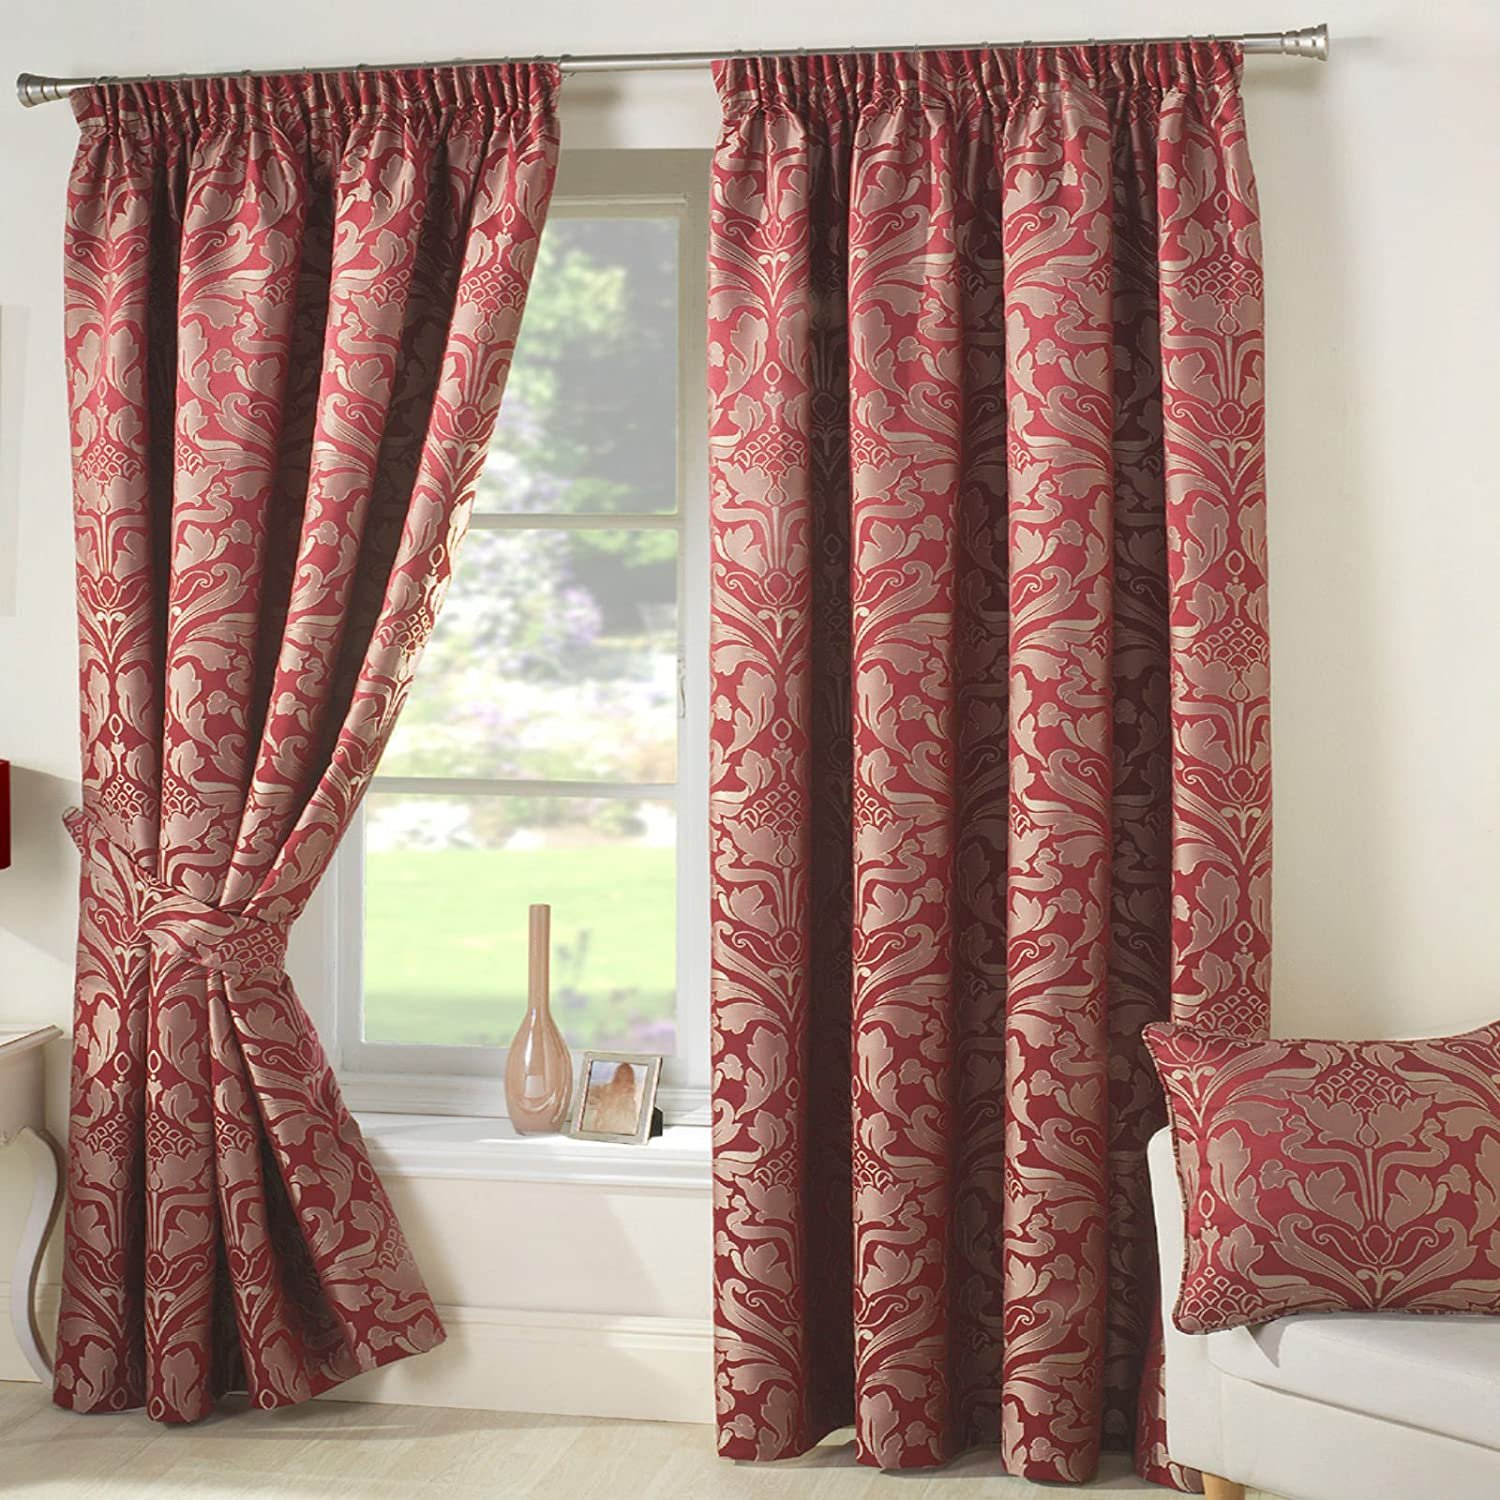 fringegold curtains and curtaintains drapes window touch inspirations curtain class of gold kitchentainsblacktainscurtains velvet sensational red pictures